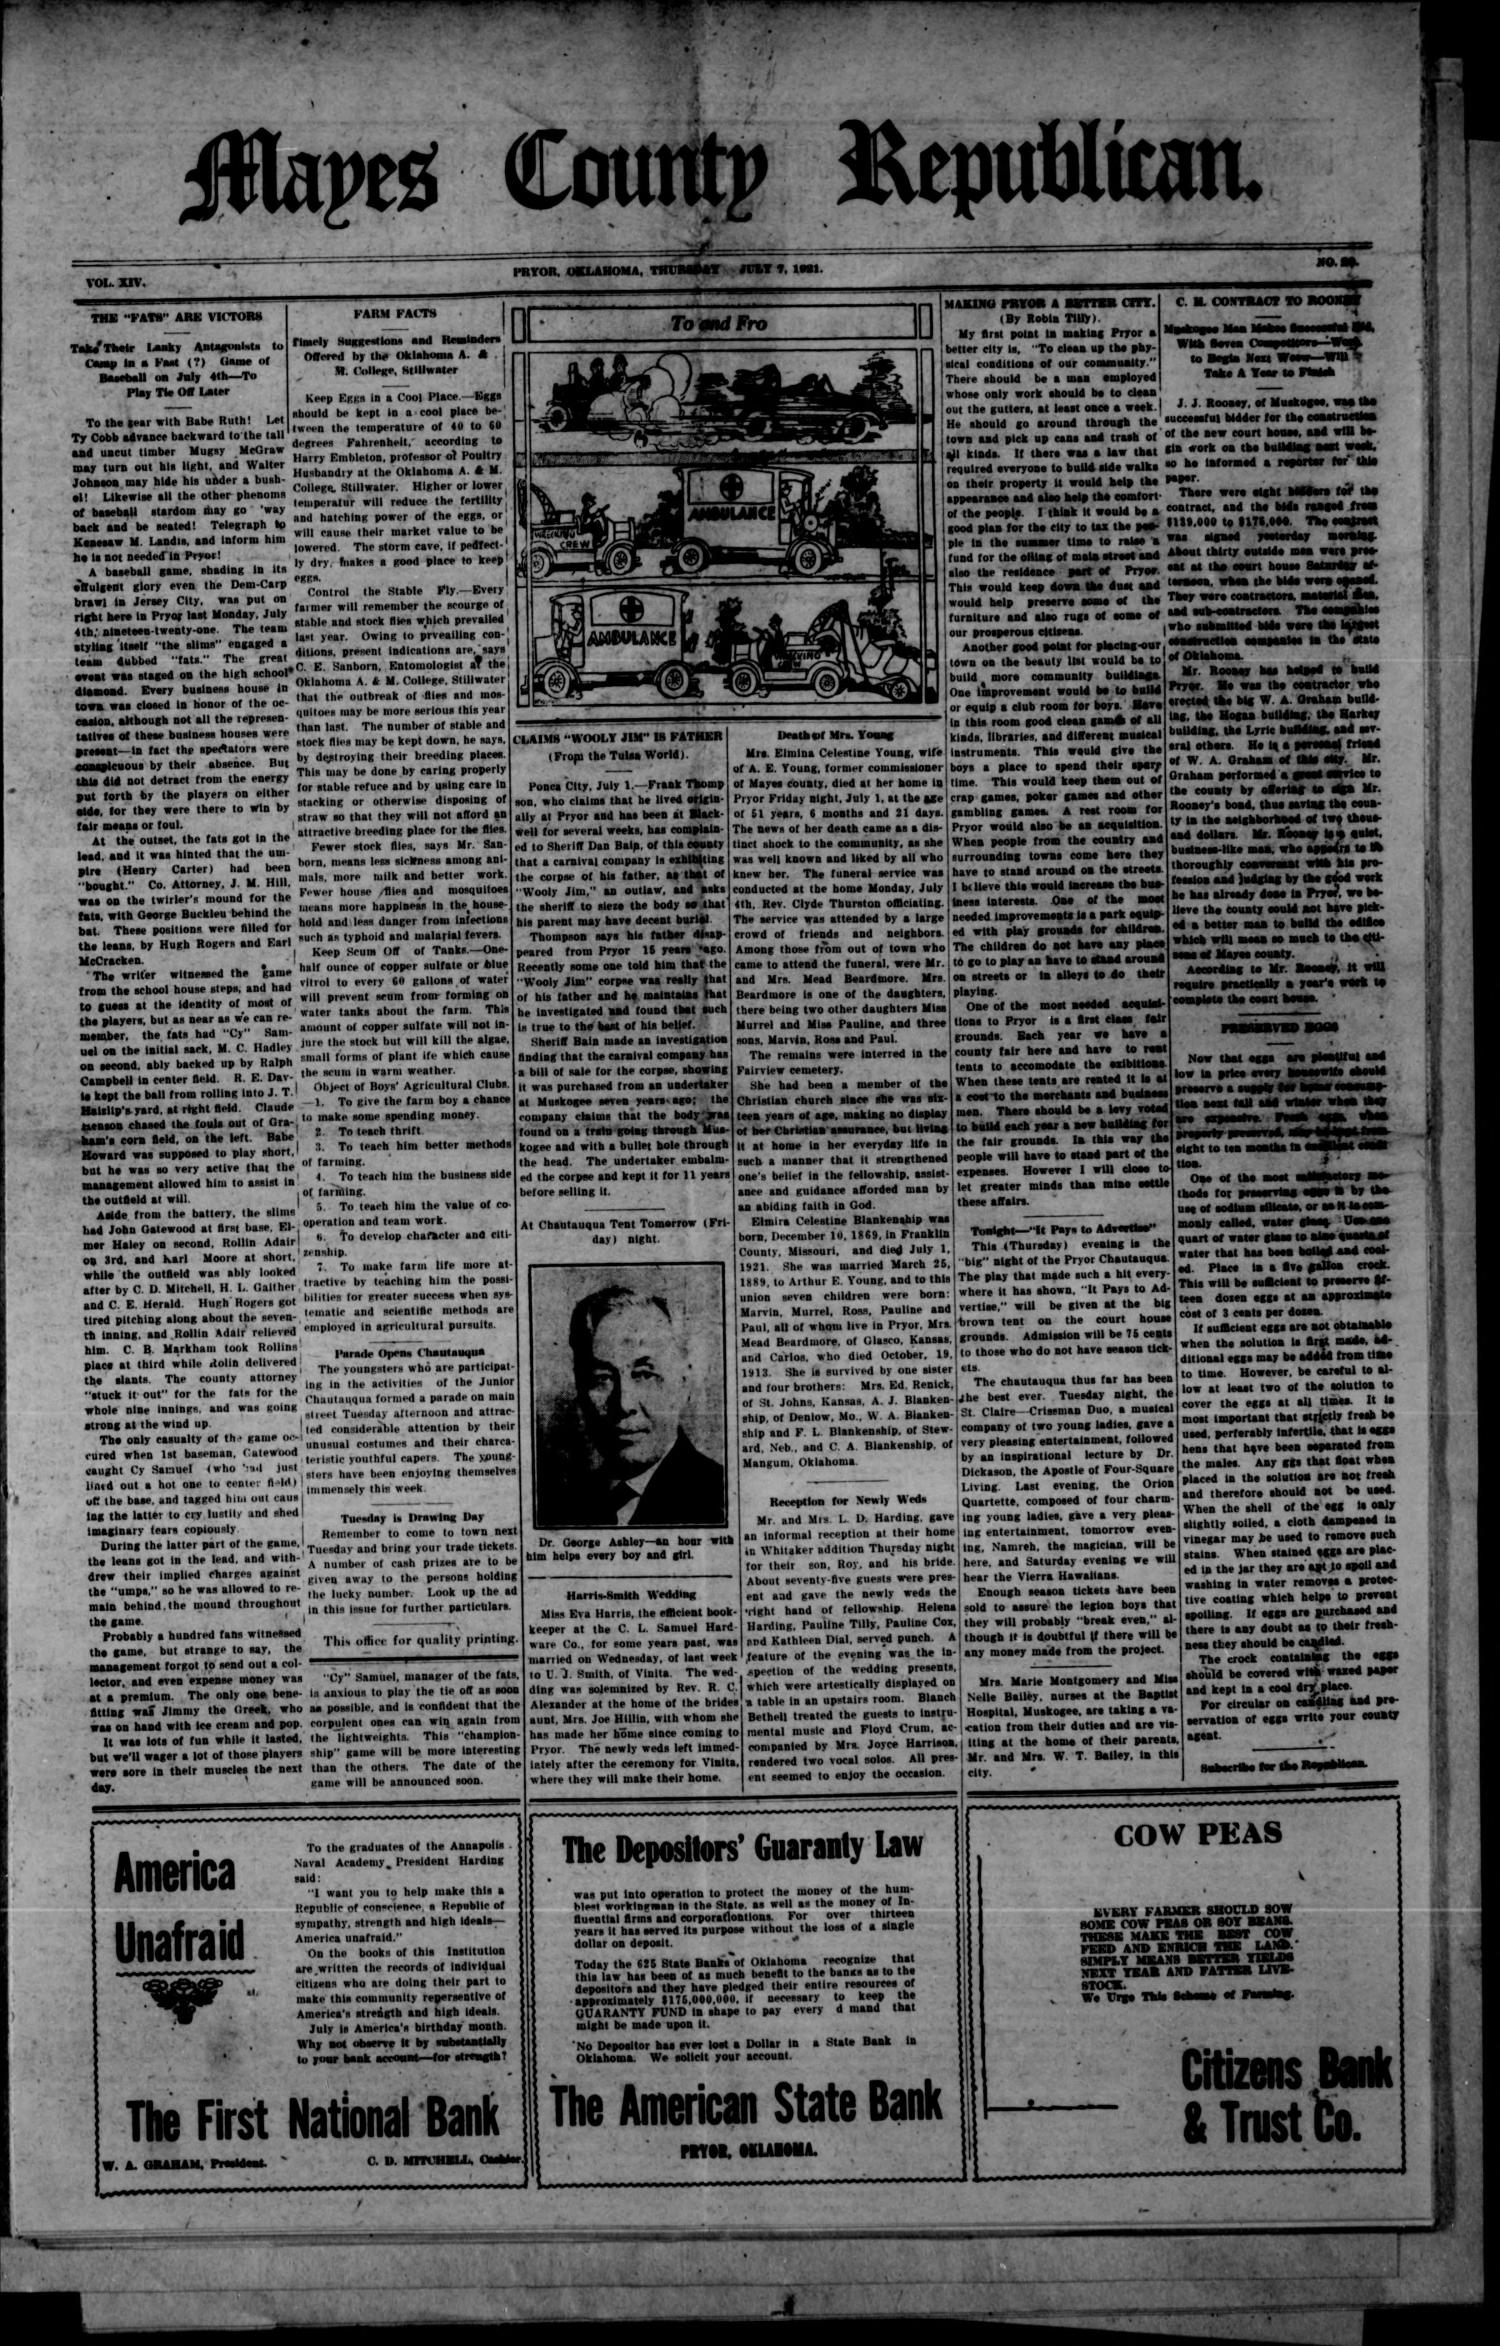 Mayes County Republican. (Pryor, Okla.), Vol. 14, No. 20, Ed. 1 Thursday, July 7, 1921                                                                                                      [Sequence #]: 1 of 8